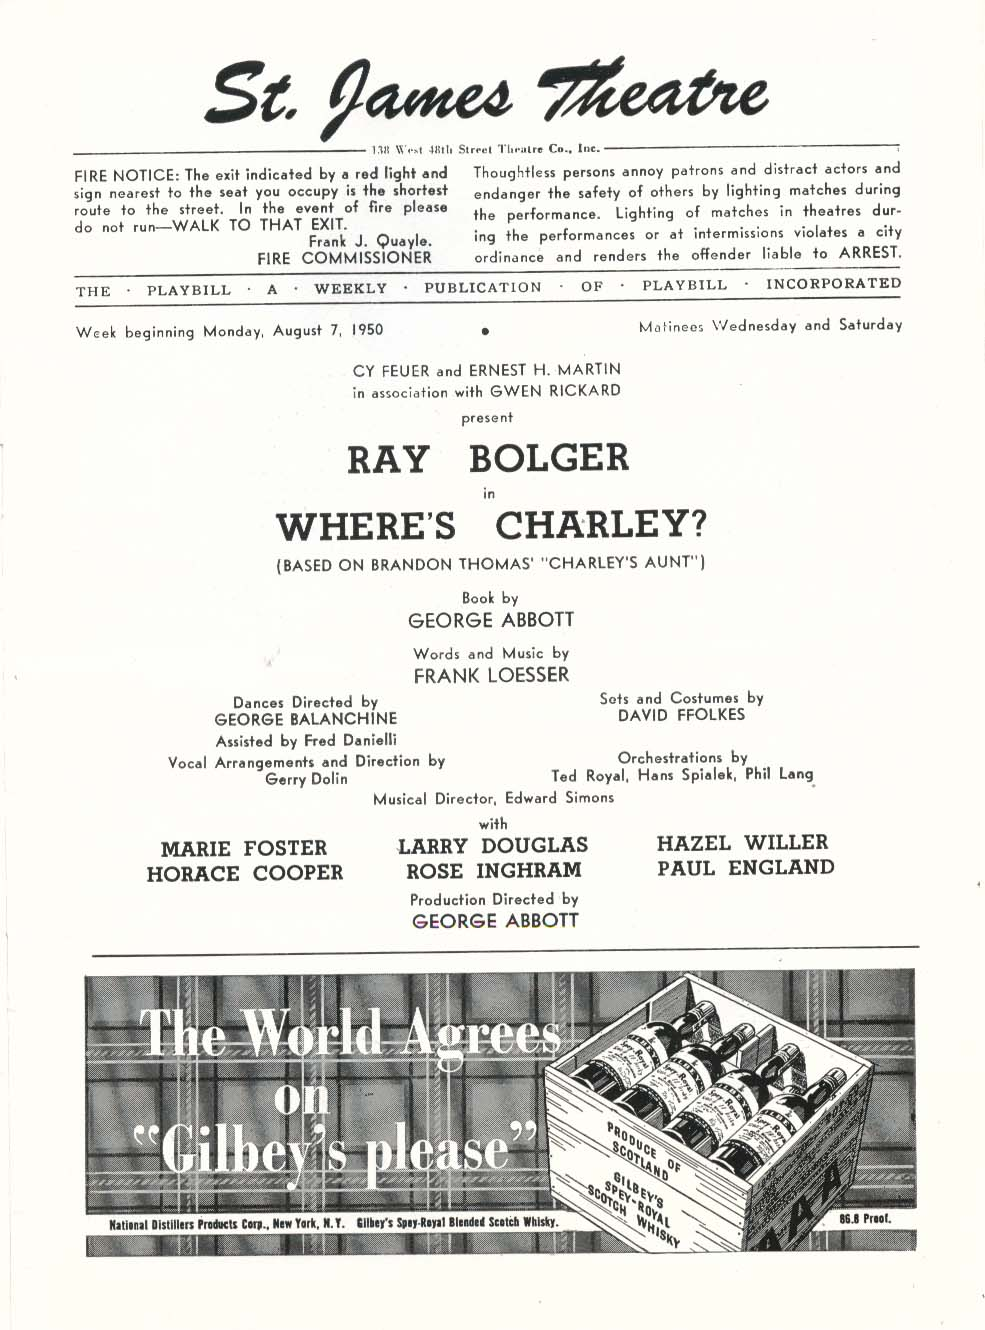 Image for Where's Charley Playbill 8/7/50 Ray Bolger Hirschfeld